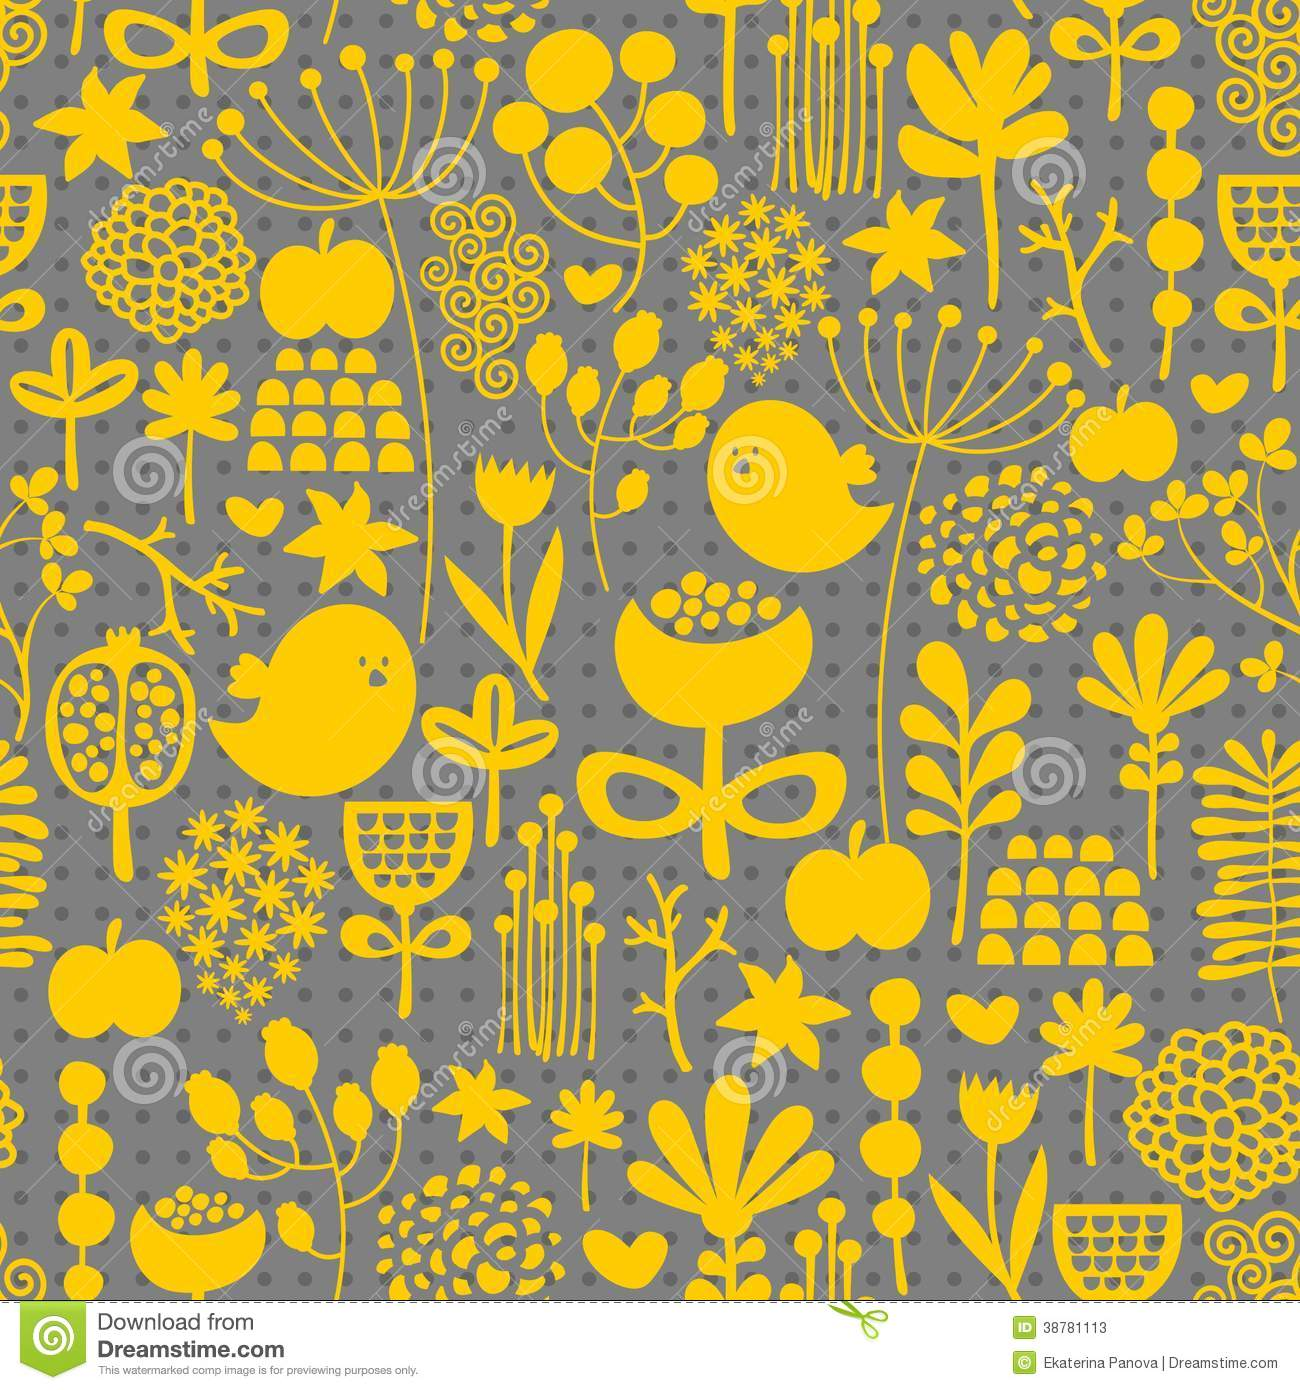 Floral Black And Grey Nature Tattoo: Floral Seamless Pattern With Cute Small Birds. Stock